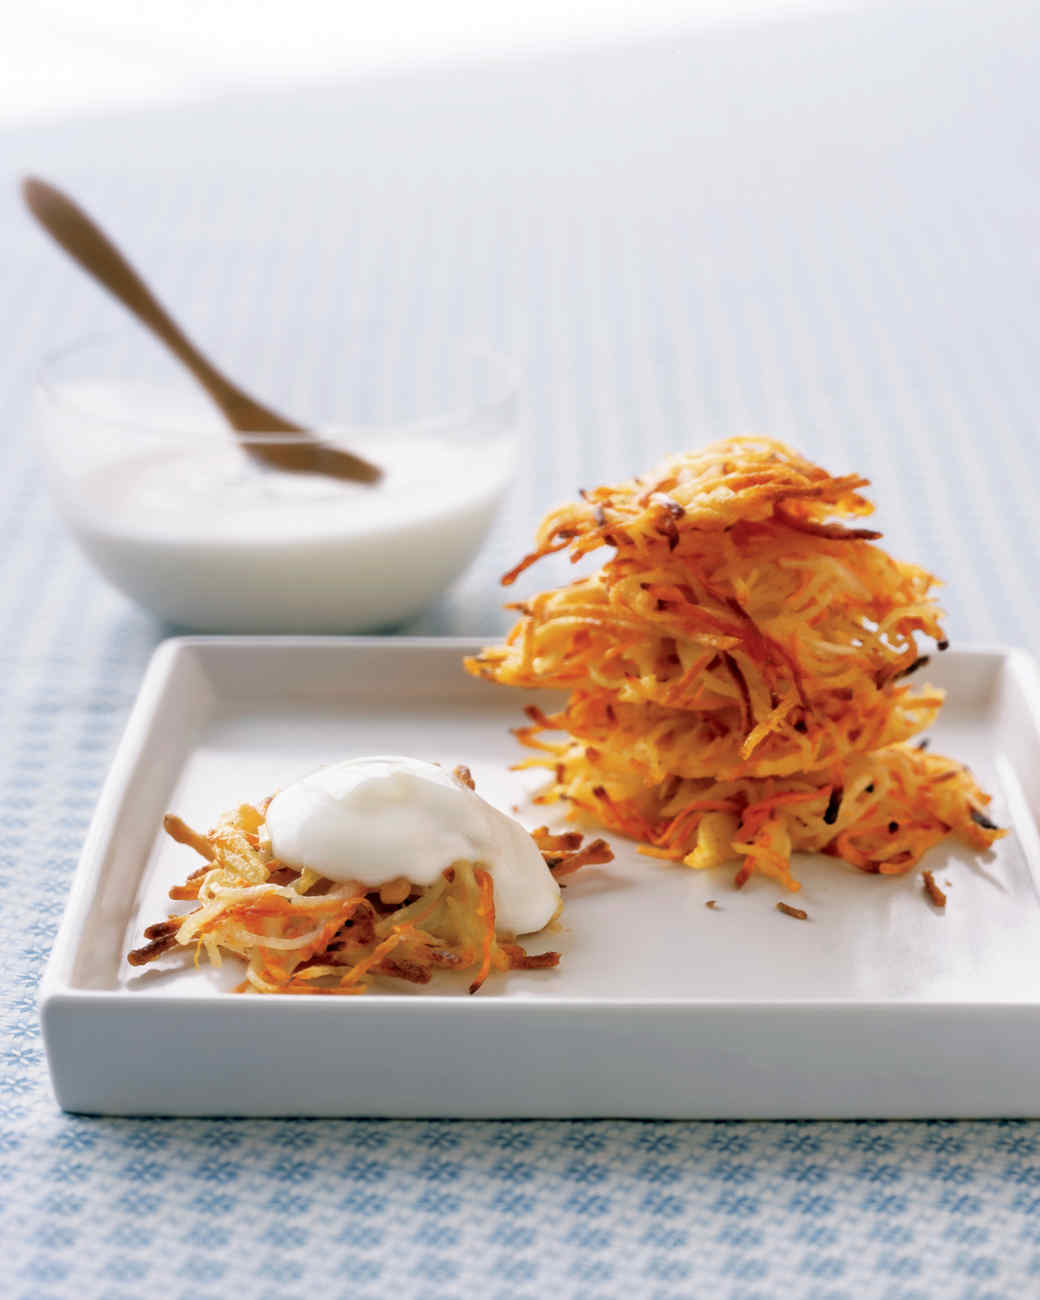 Carrot-and-Potato Latkes